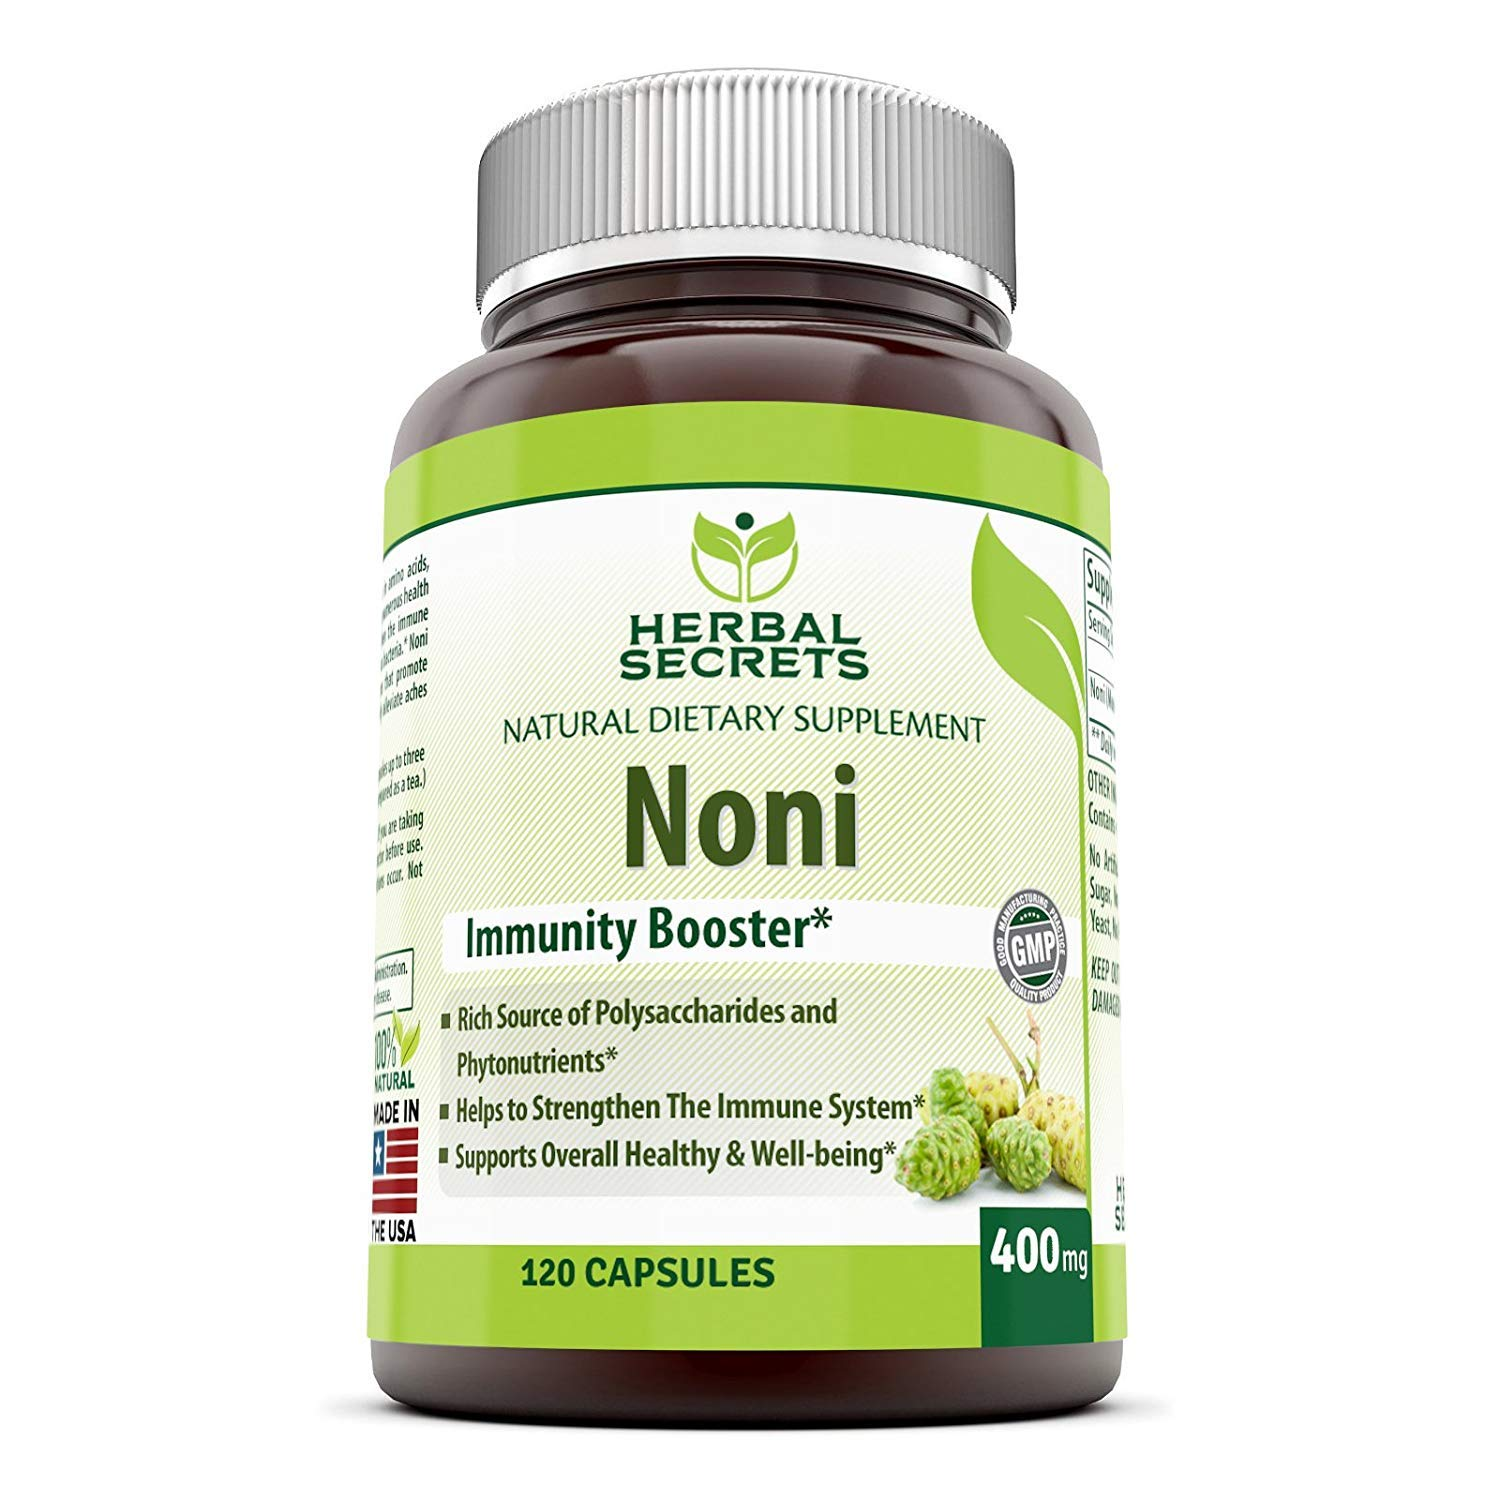 Herbal Secrets Noni - 400 Mg 120 Capsules (Non-GMO) - Helps to Strengthen The Immune System* Supports Overall Health and Well Being*